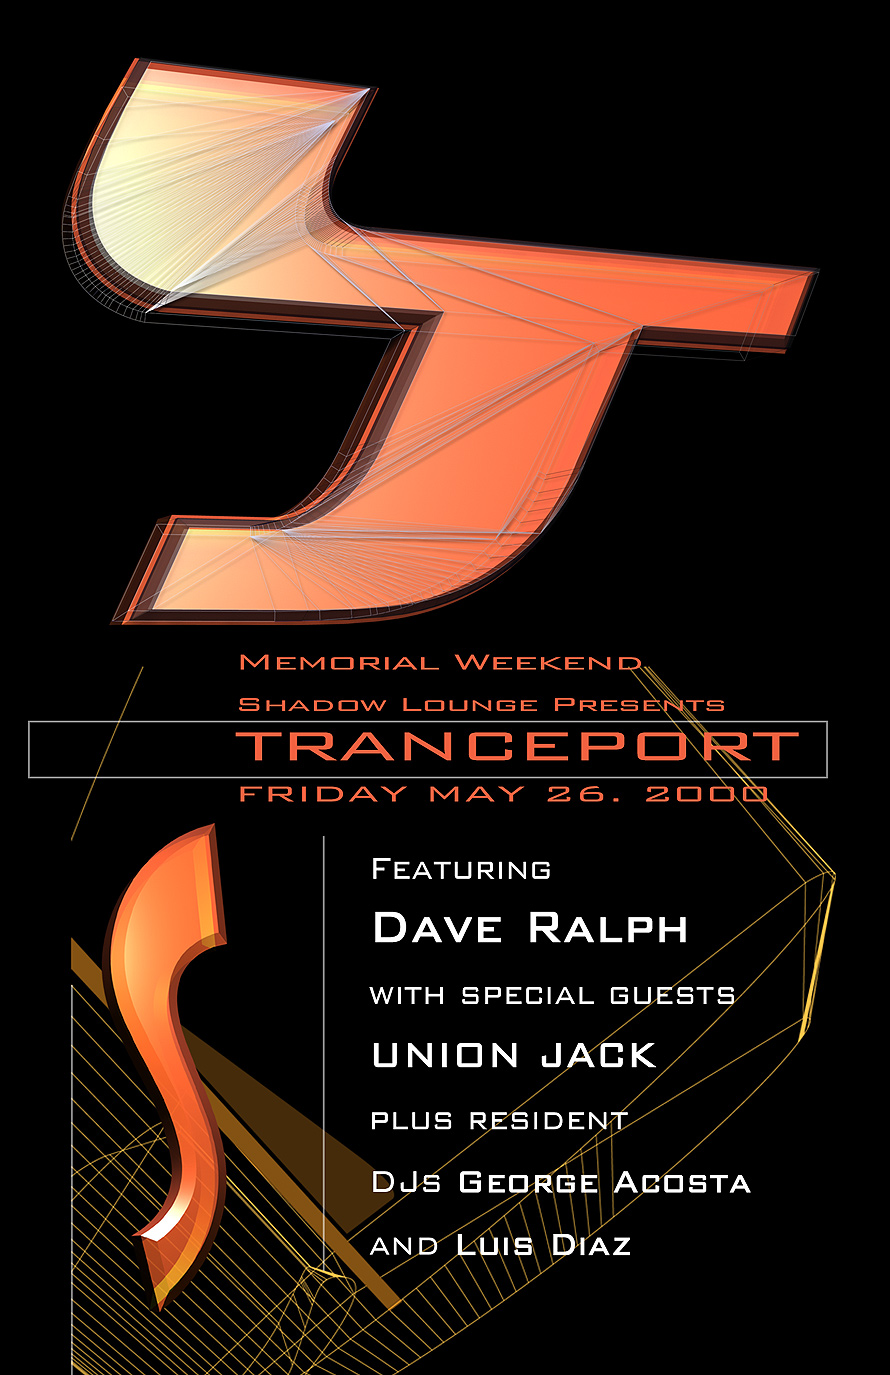 Shadow Lounge Presents Tranceport